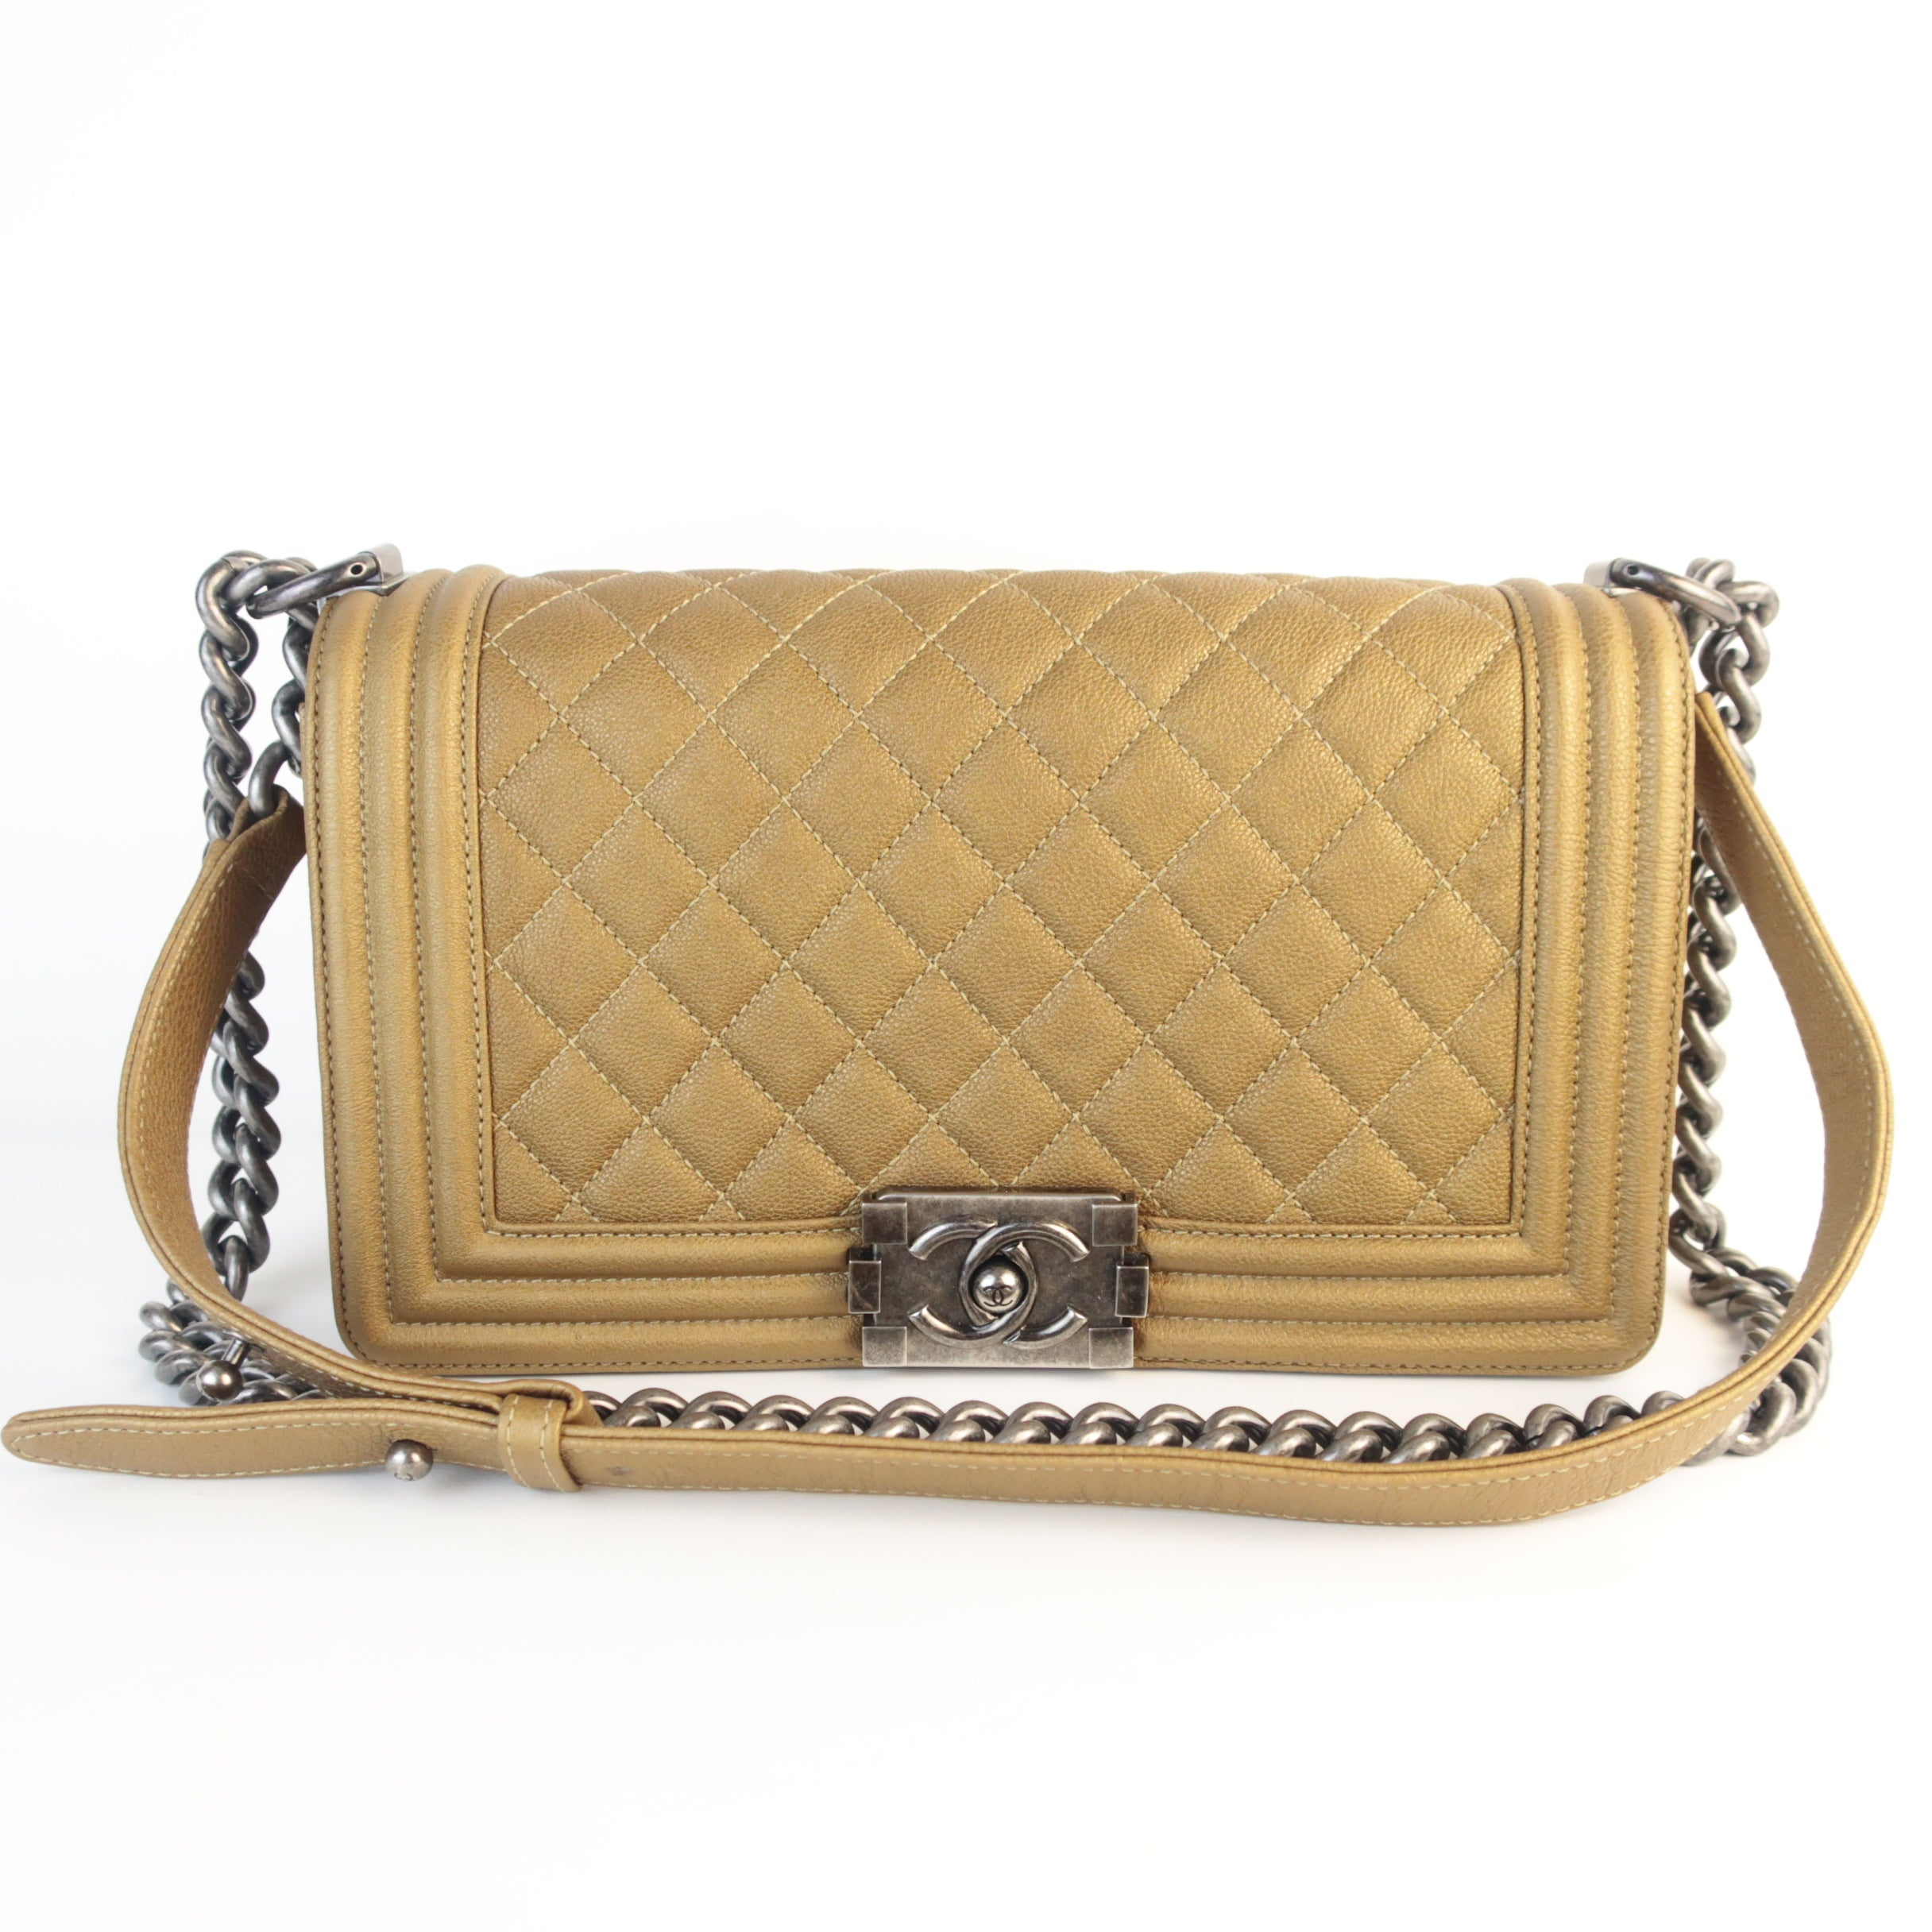 How Much Are Chanel Purses on the Resale Market? chanel boy bag